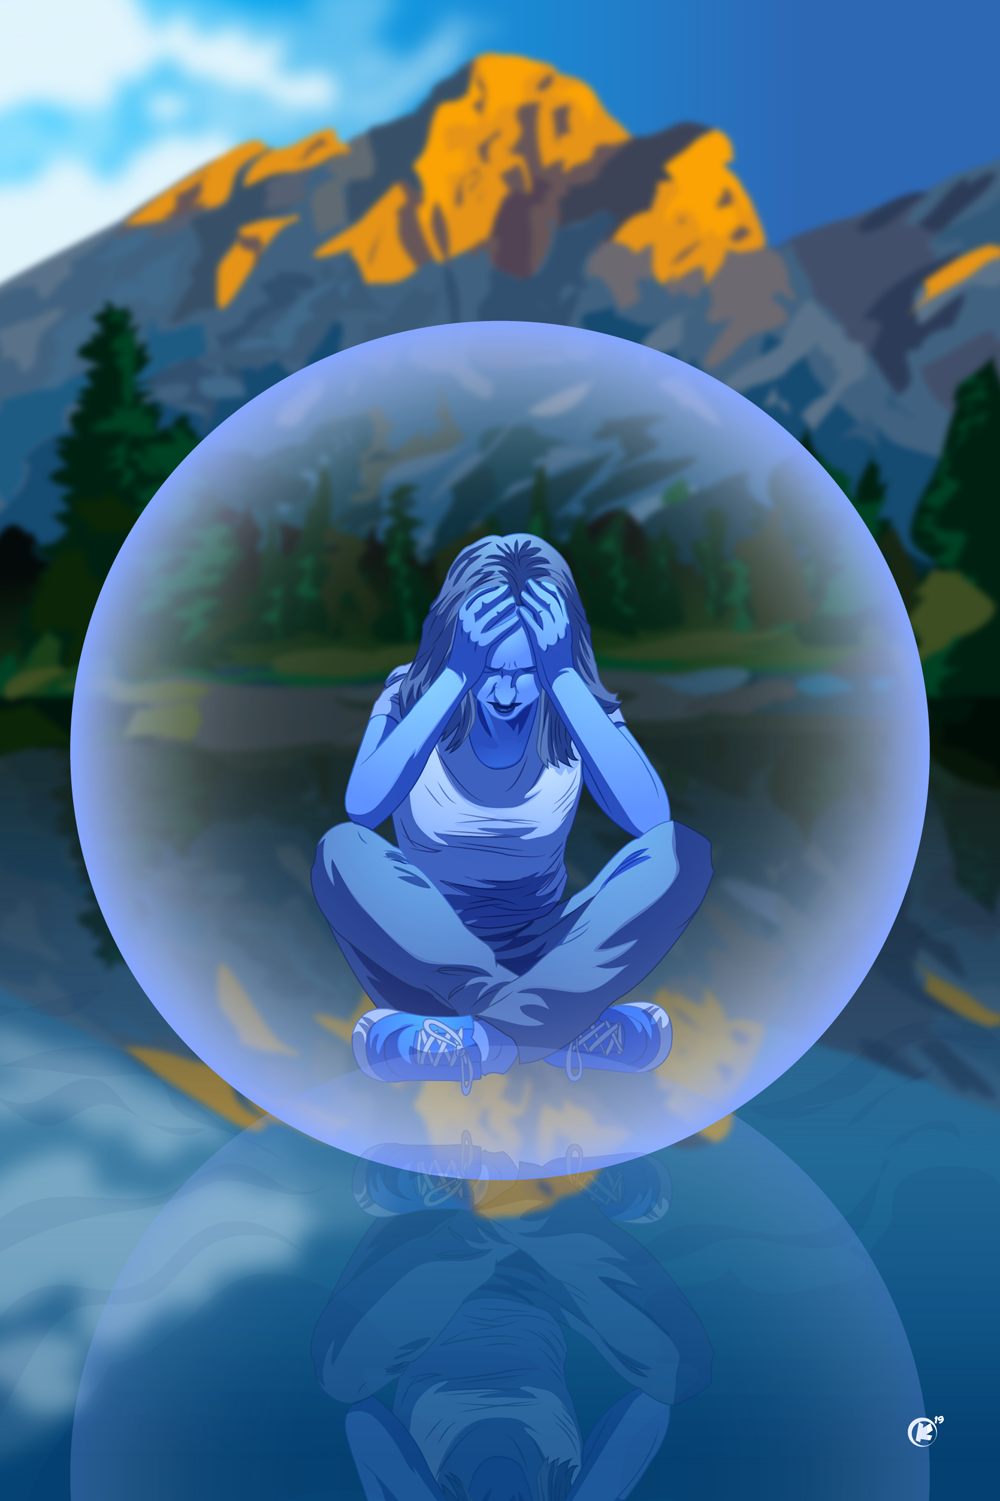 Depression 21: War thunders inside her bulletproof bubble, blind to beauty, she only feels sorrow. Suffering outside of truth and time, she's stuck inside her own blue mind.